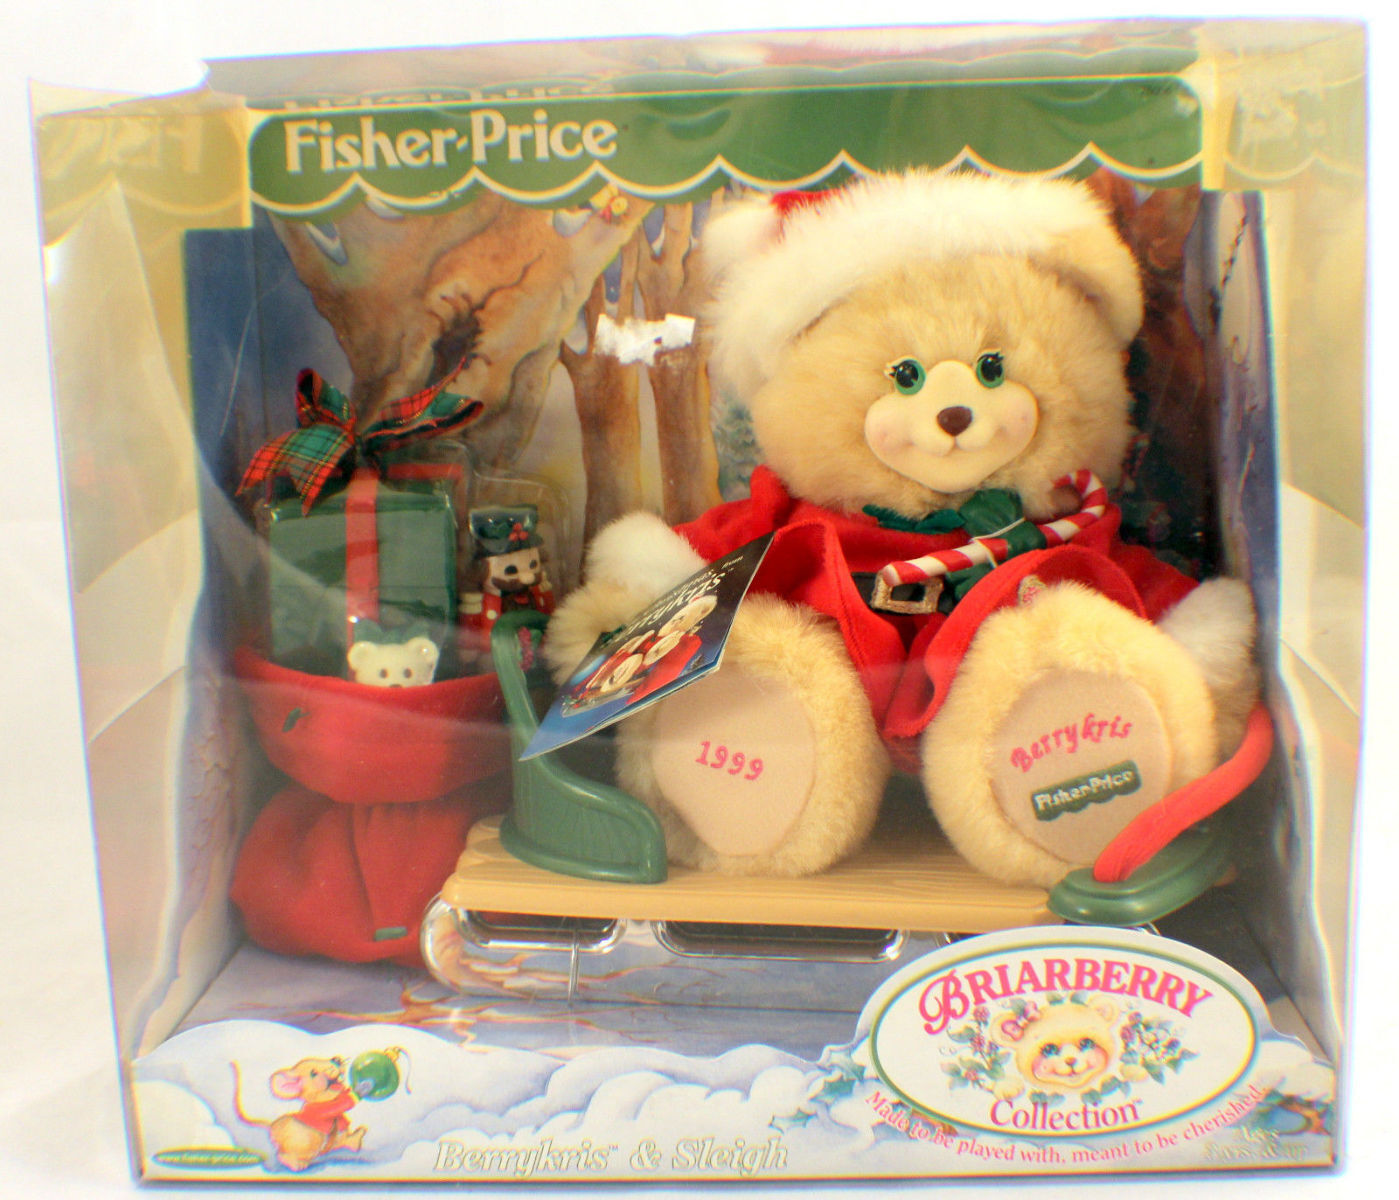 New Briarberry Collection Berrykris & Sleigh Set